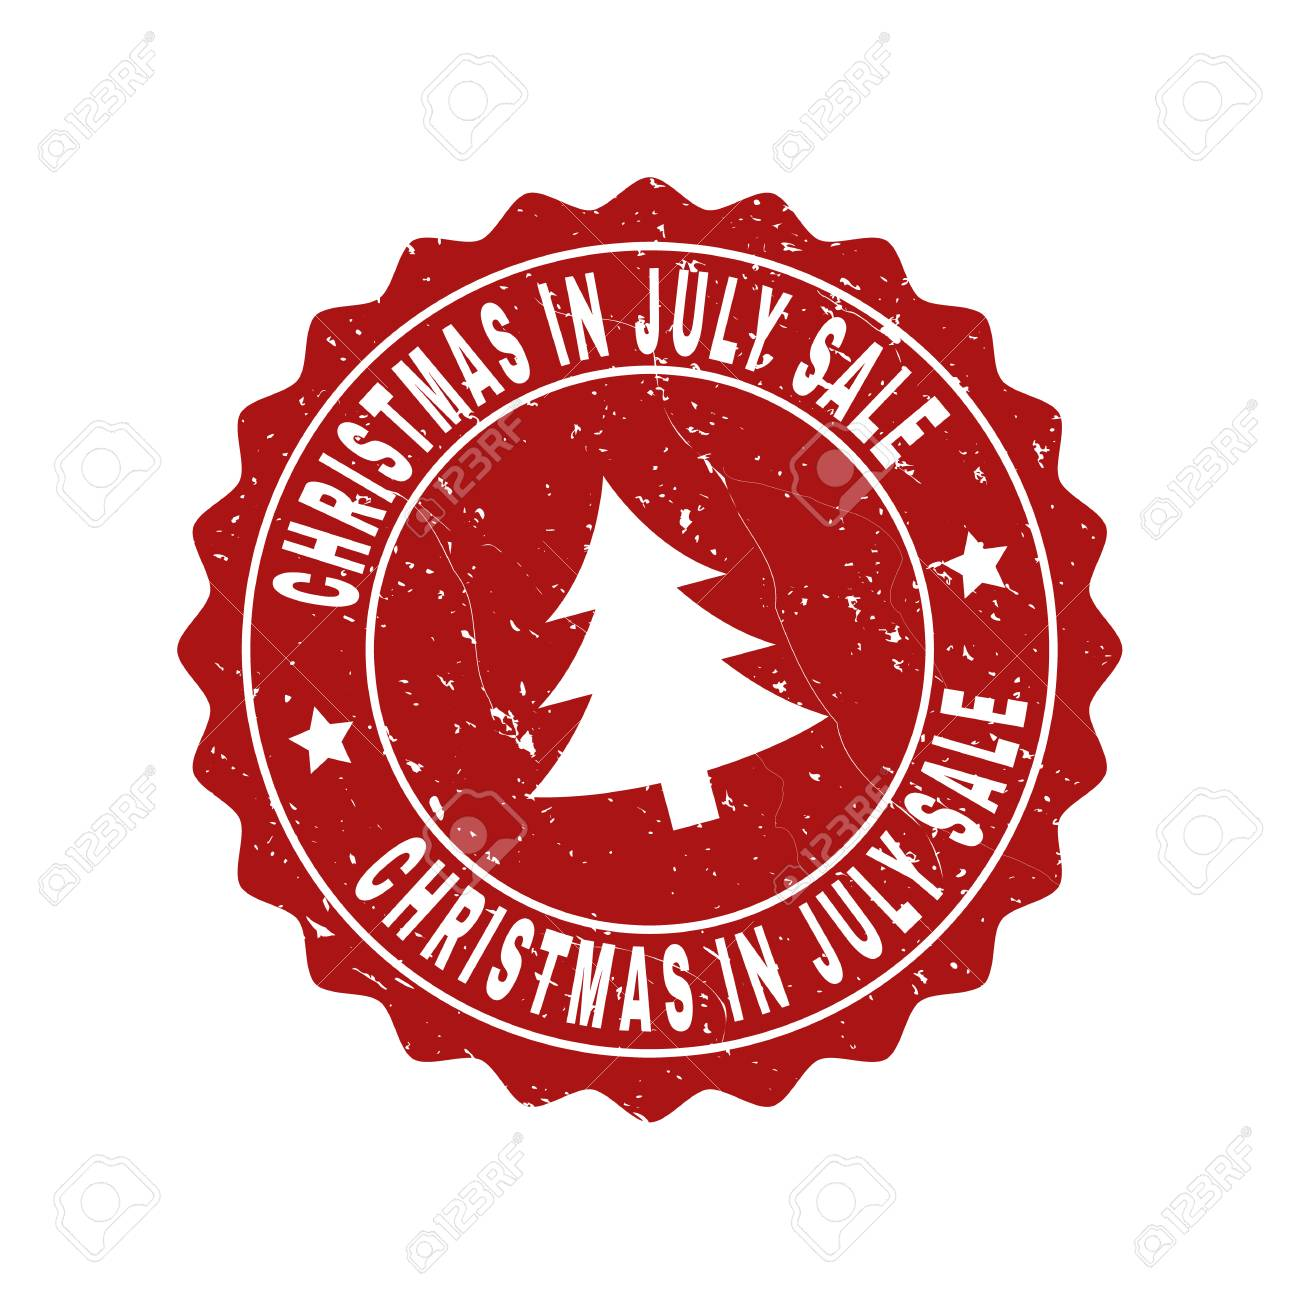 Christmas In July Sale Images.Grunge Round Christmas In July Sale Stamp Seal With Fir Tree